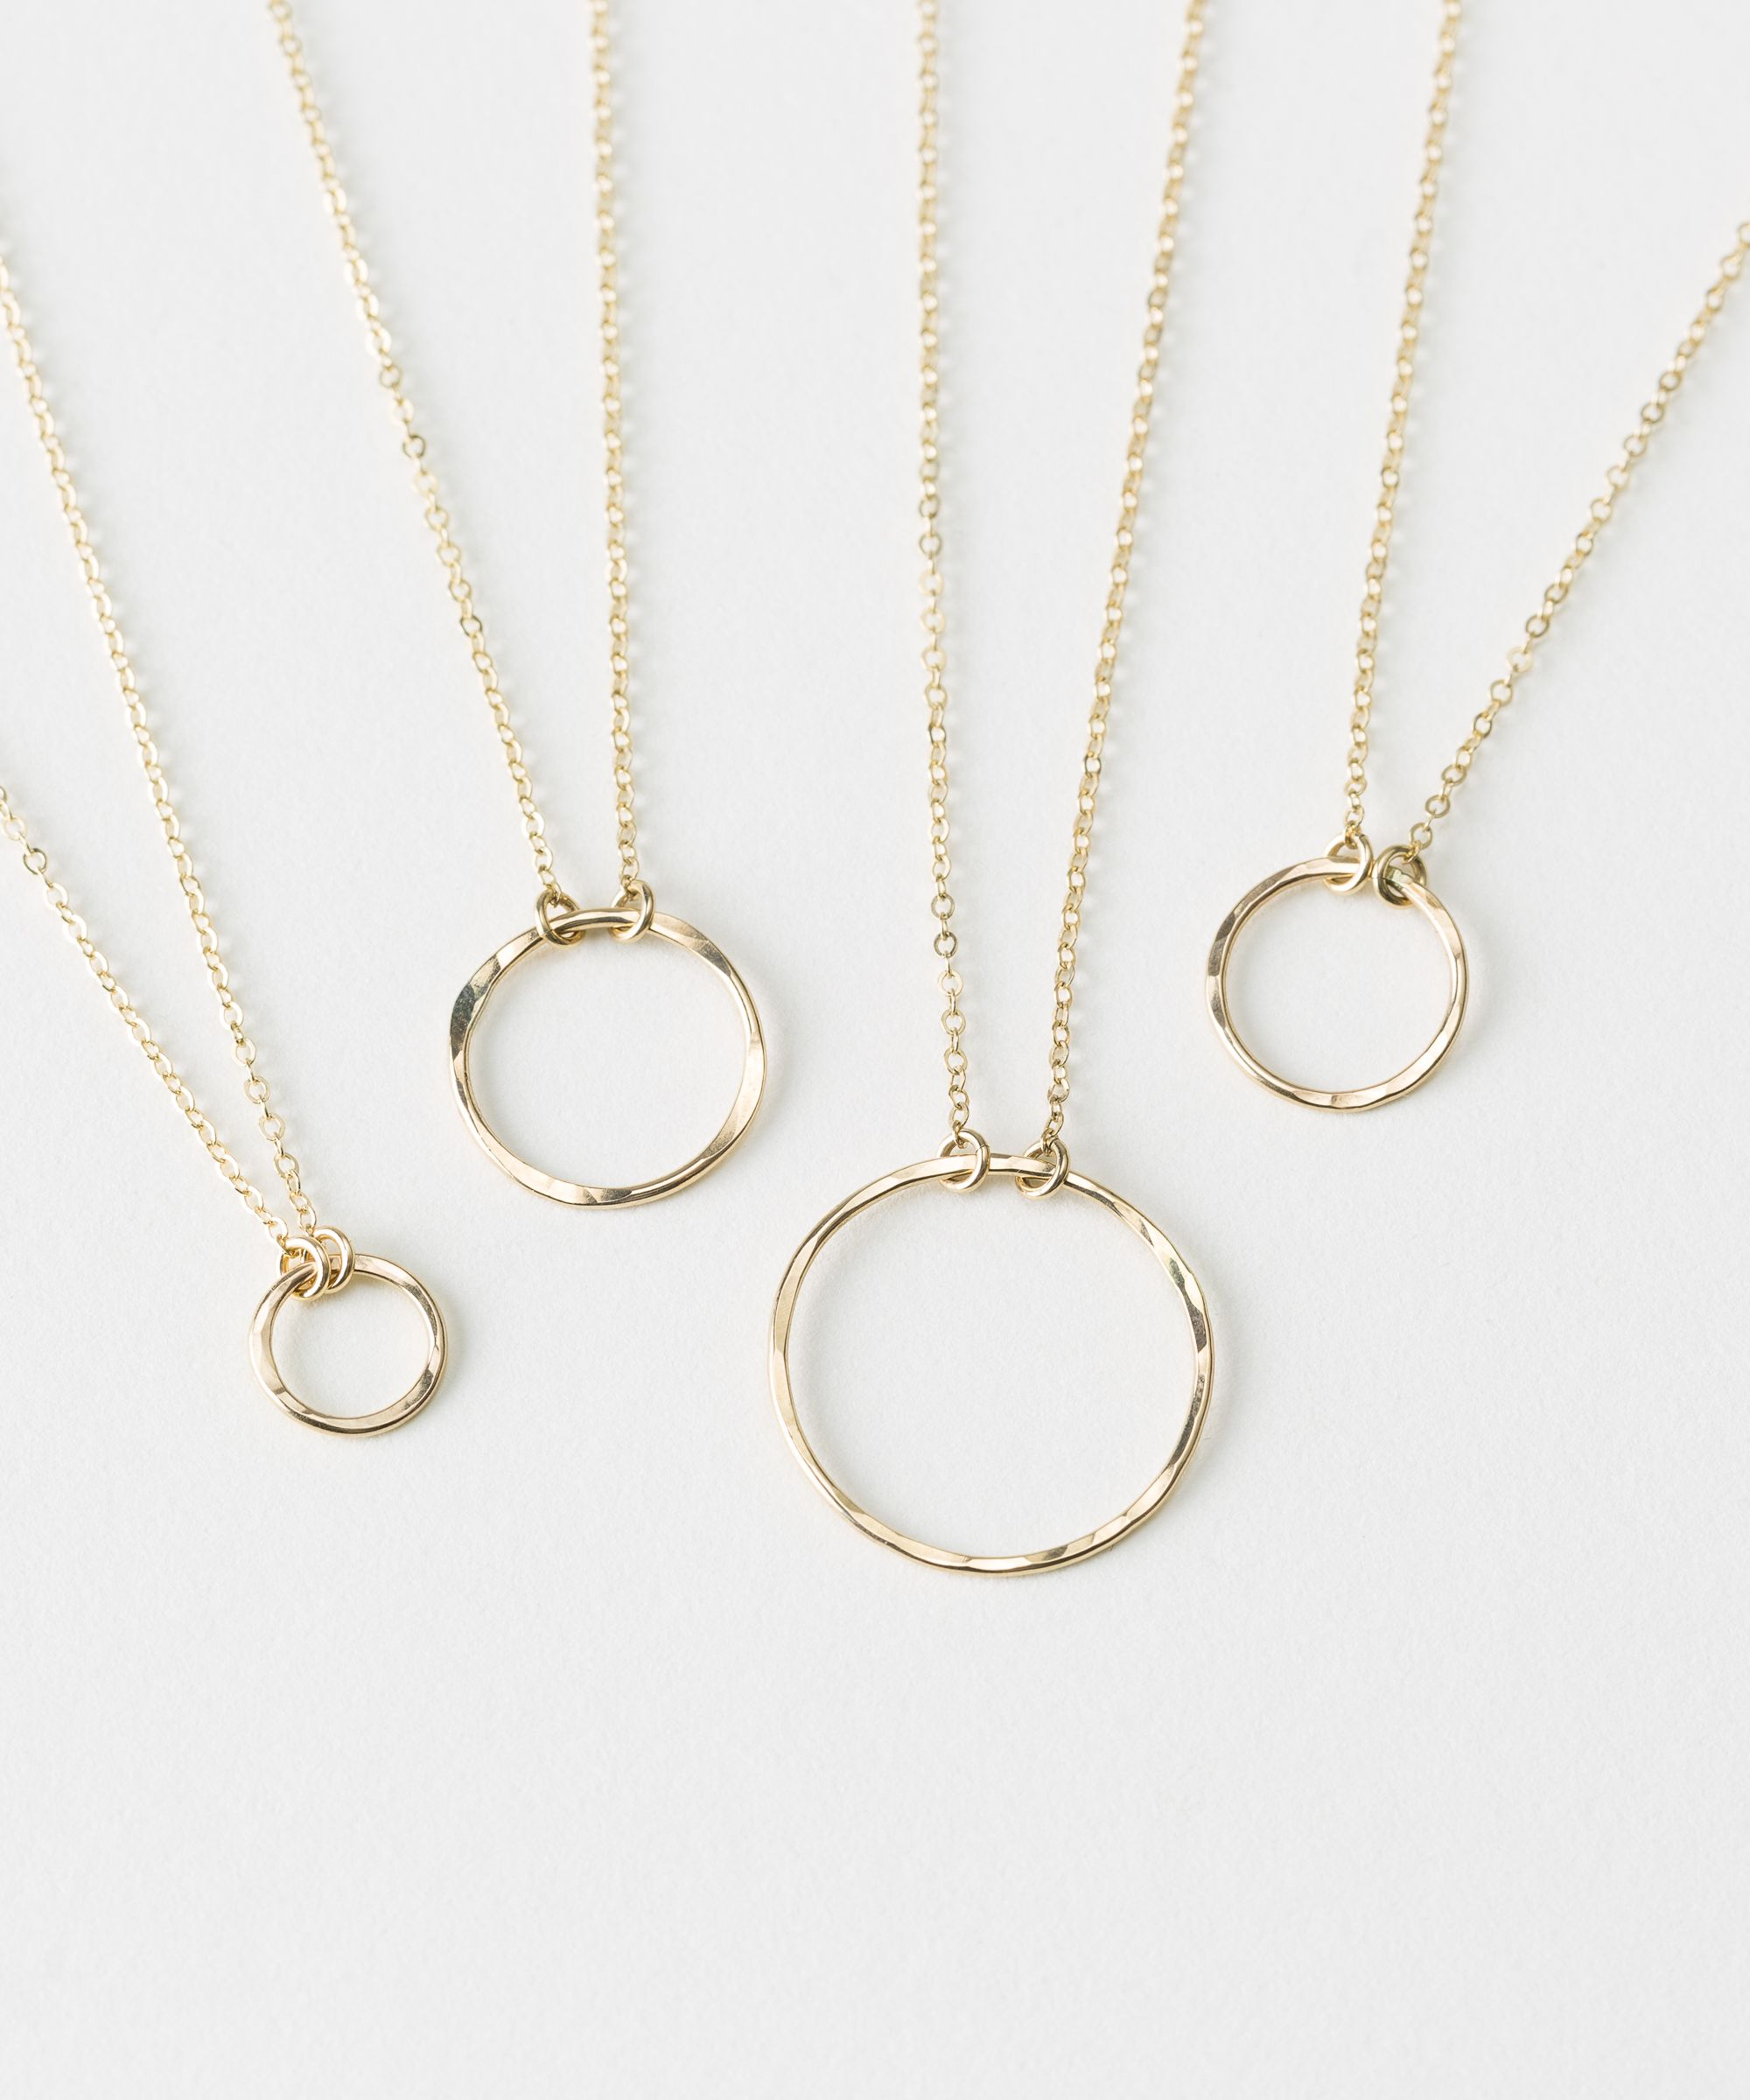 Selene Necklace In 2019 | Necklaces | Circle Necklace, Simple Regarding Newest Circle Of Sparkle Necklaces (View 10 of 25)